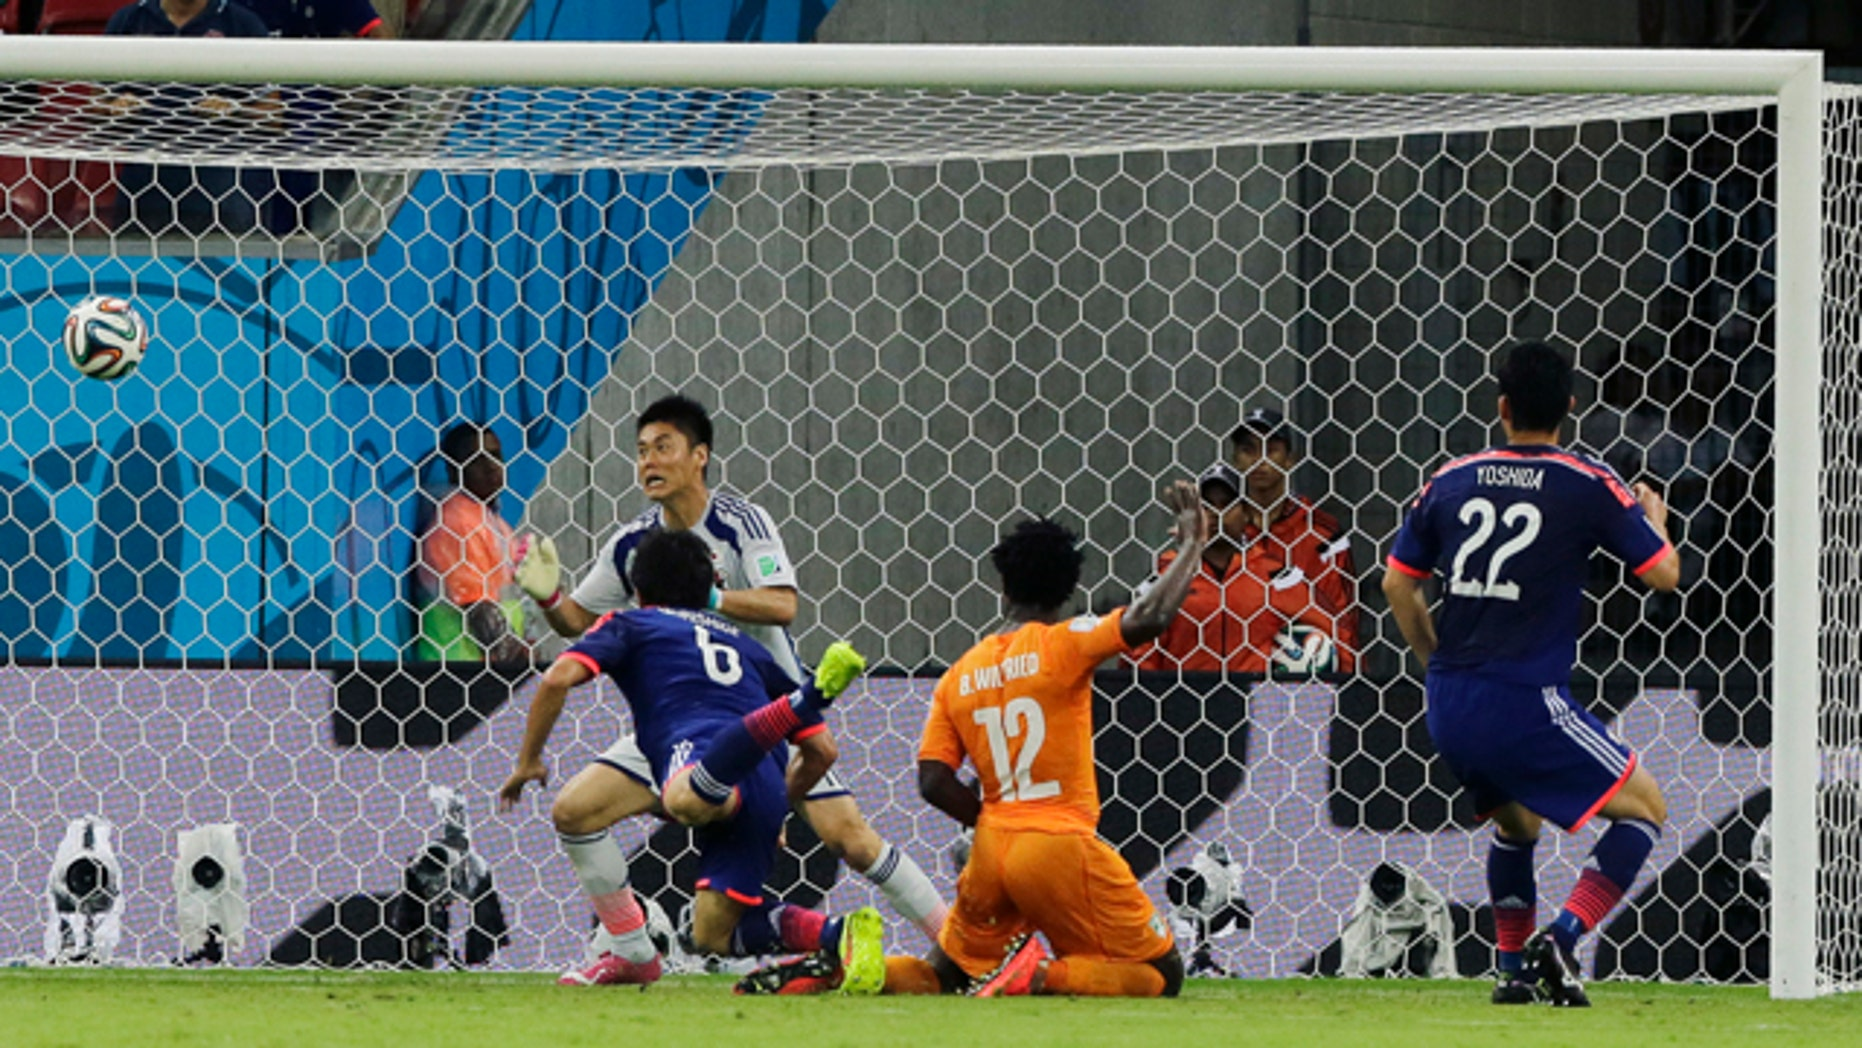 June 14, 2014: Ivory Coast's Wilfried Bony, (12), scores his side's first goal during the group C World Cup soccer match between Ivory Coast and Japan at the Arena Pernambuco in Recife, Brazil. (AP Photo/Shuji Kajiyama)